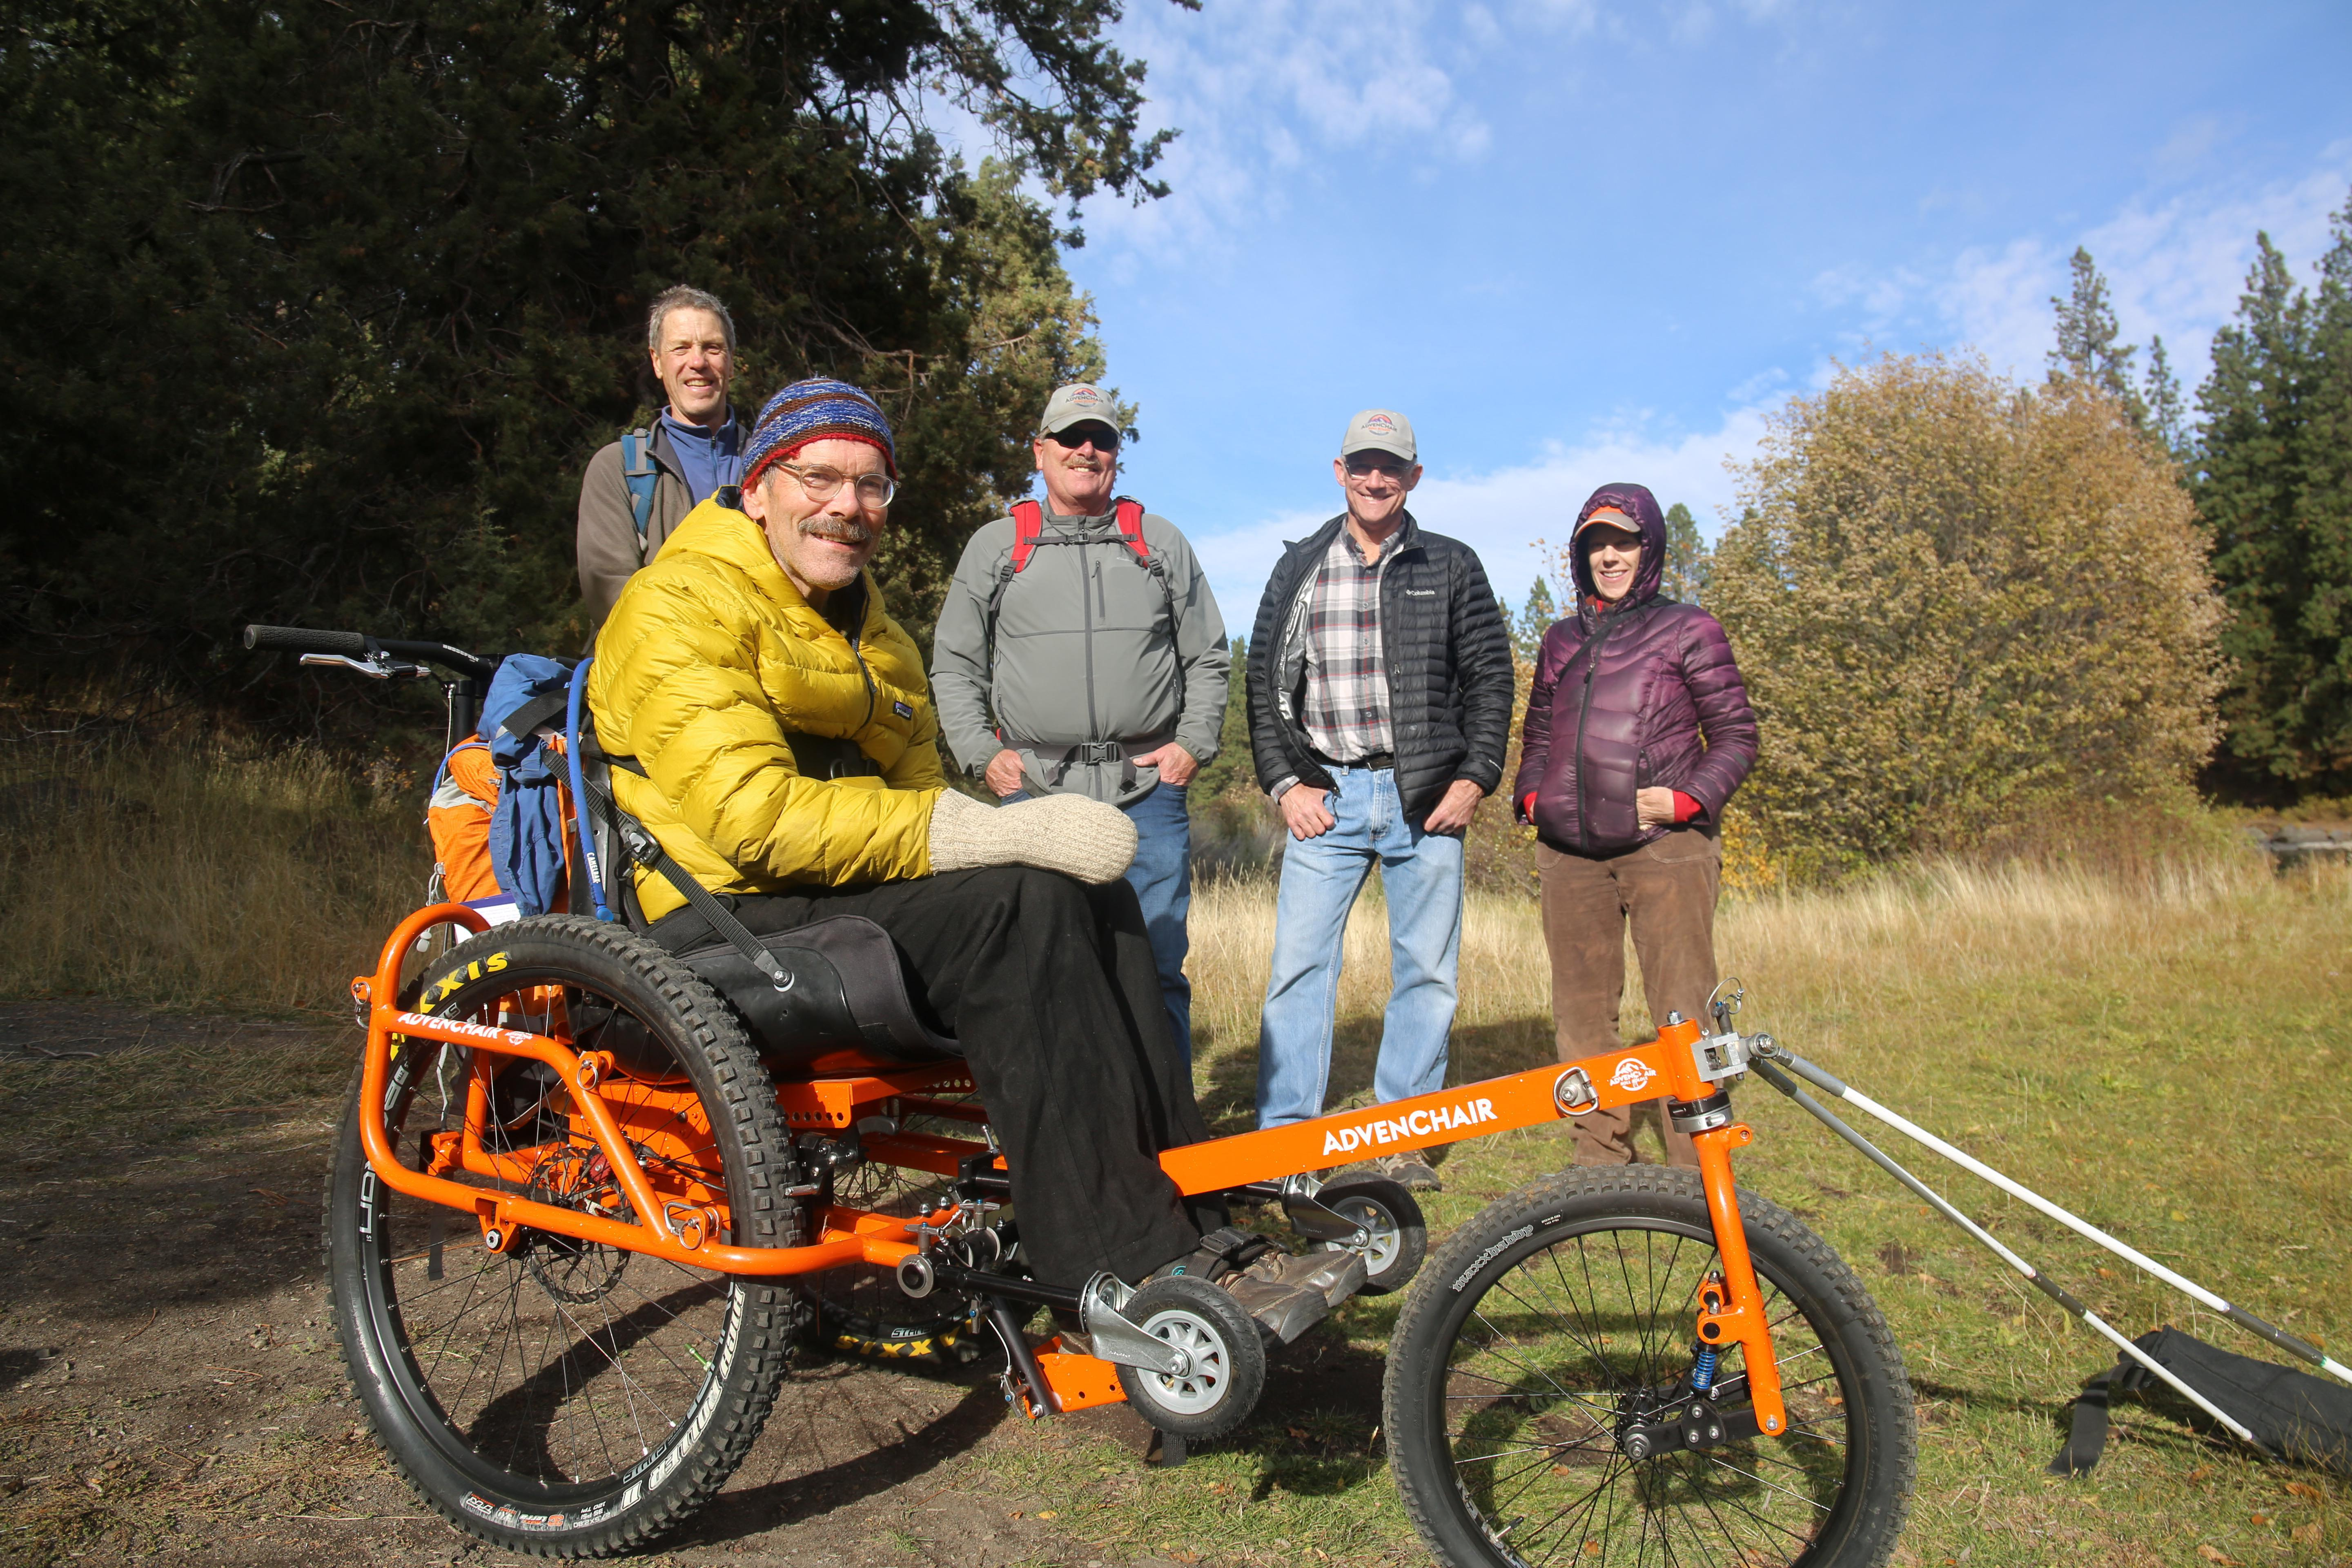 Geoff Babb, front, poses with his team for a Sunday afternoon on the Deschutes river, from left to right: David Green, Jack Arnold, Brian Tandy and Amy Kazmier.